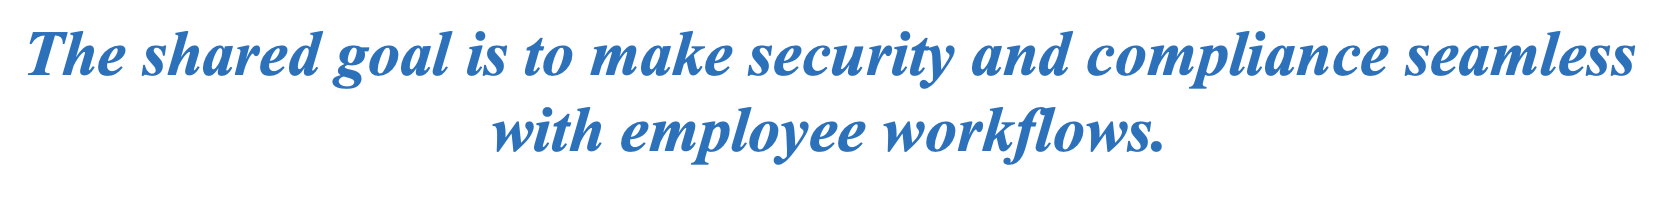 CISOs and their employees have a shared goal